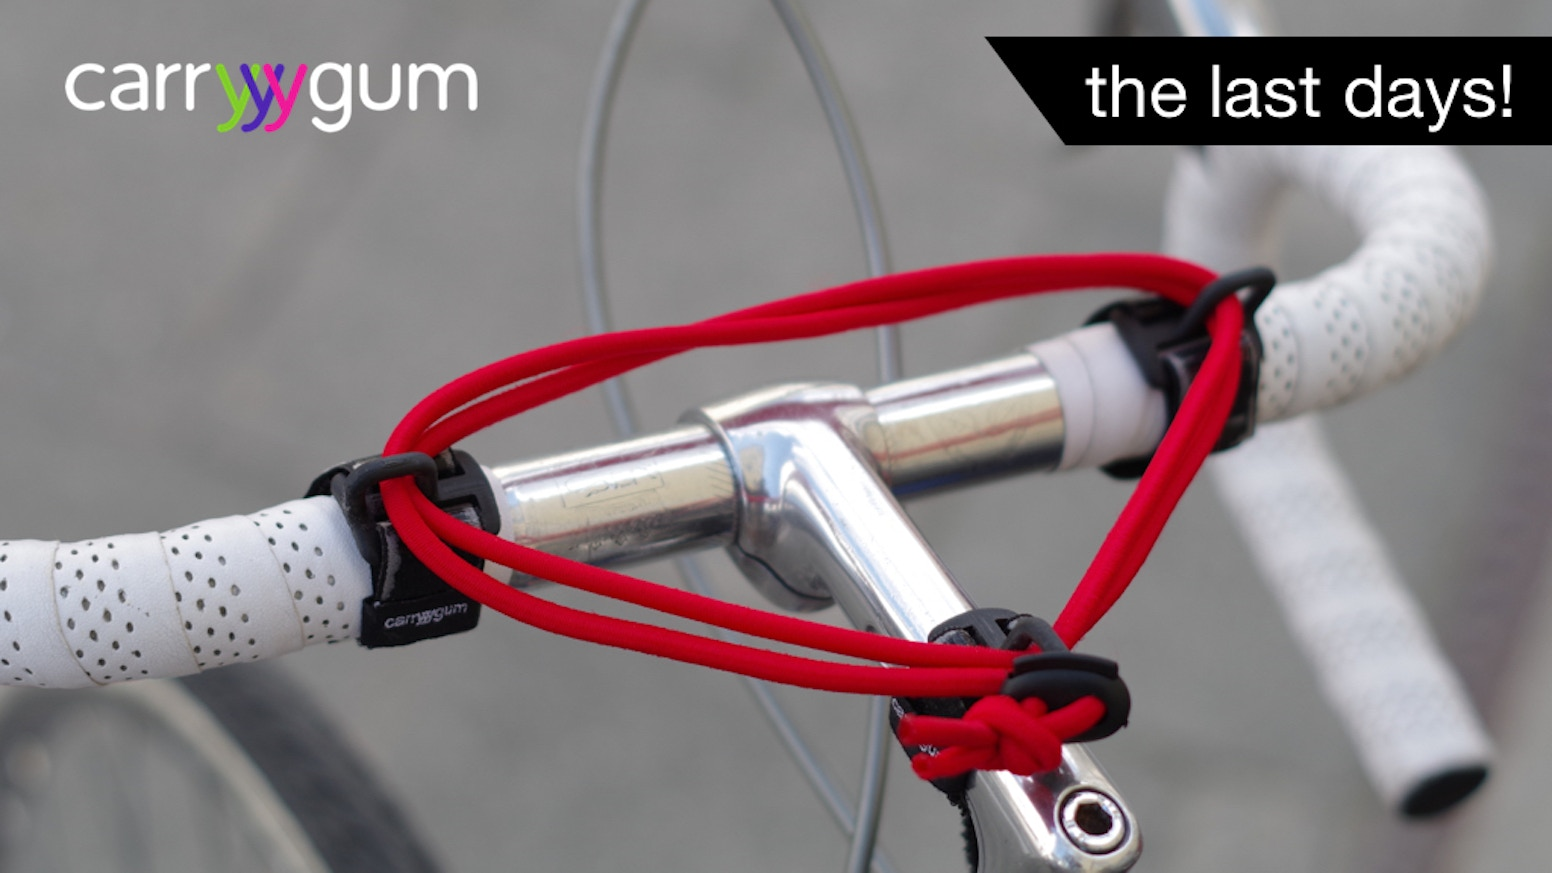 carryyygum safely secures smaller items like clothes, books, paper, handbags, parcels, lunchboxes etc. to the handlebar.